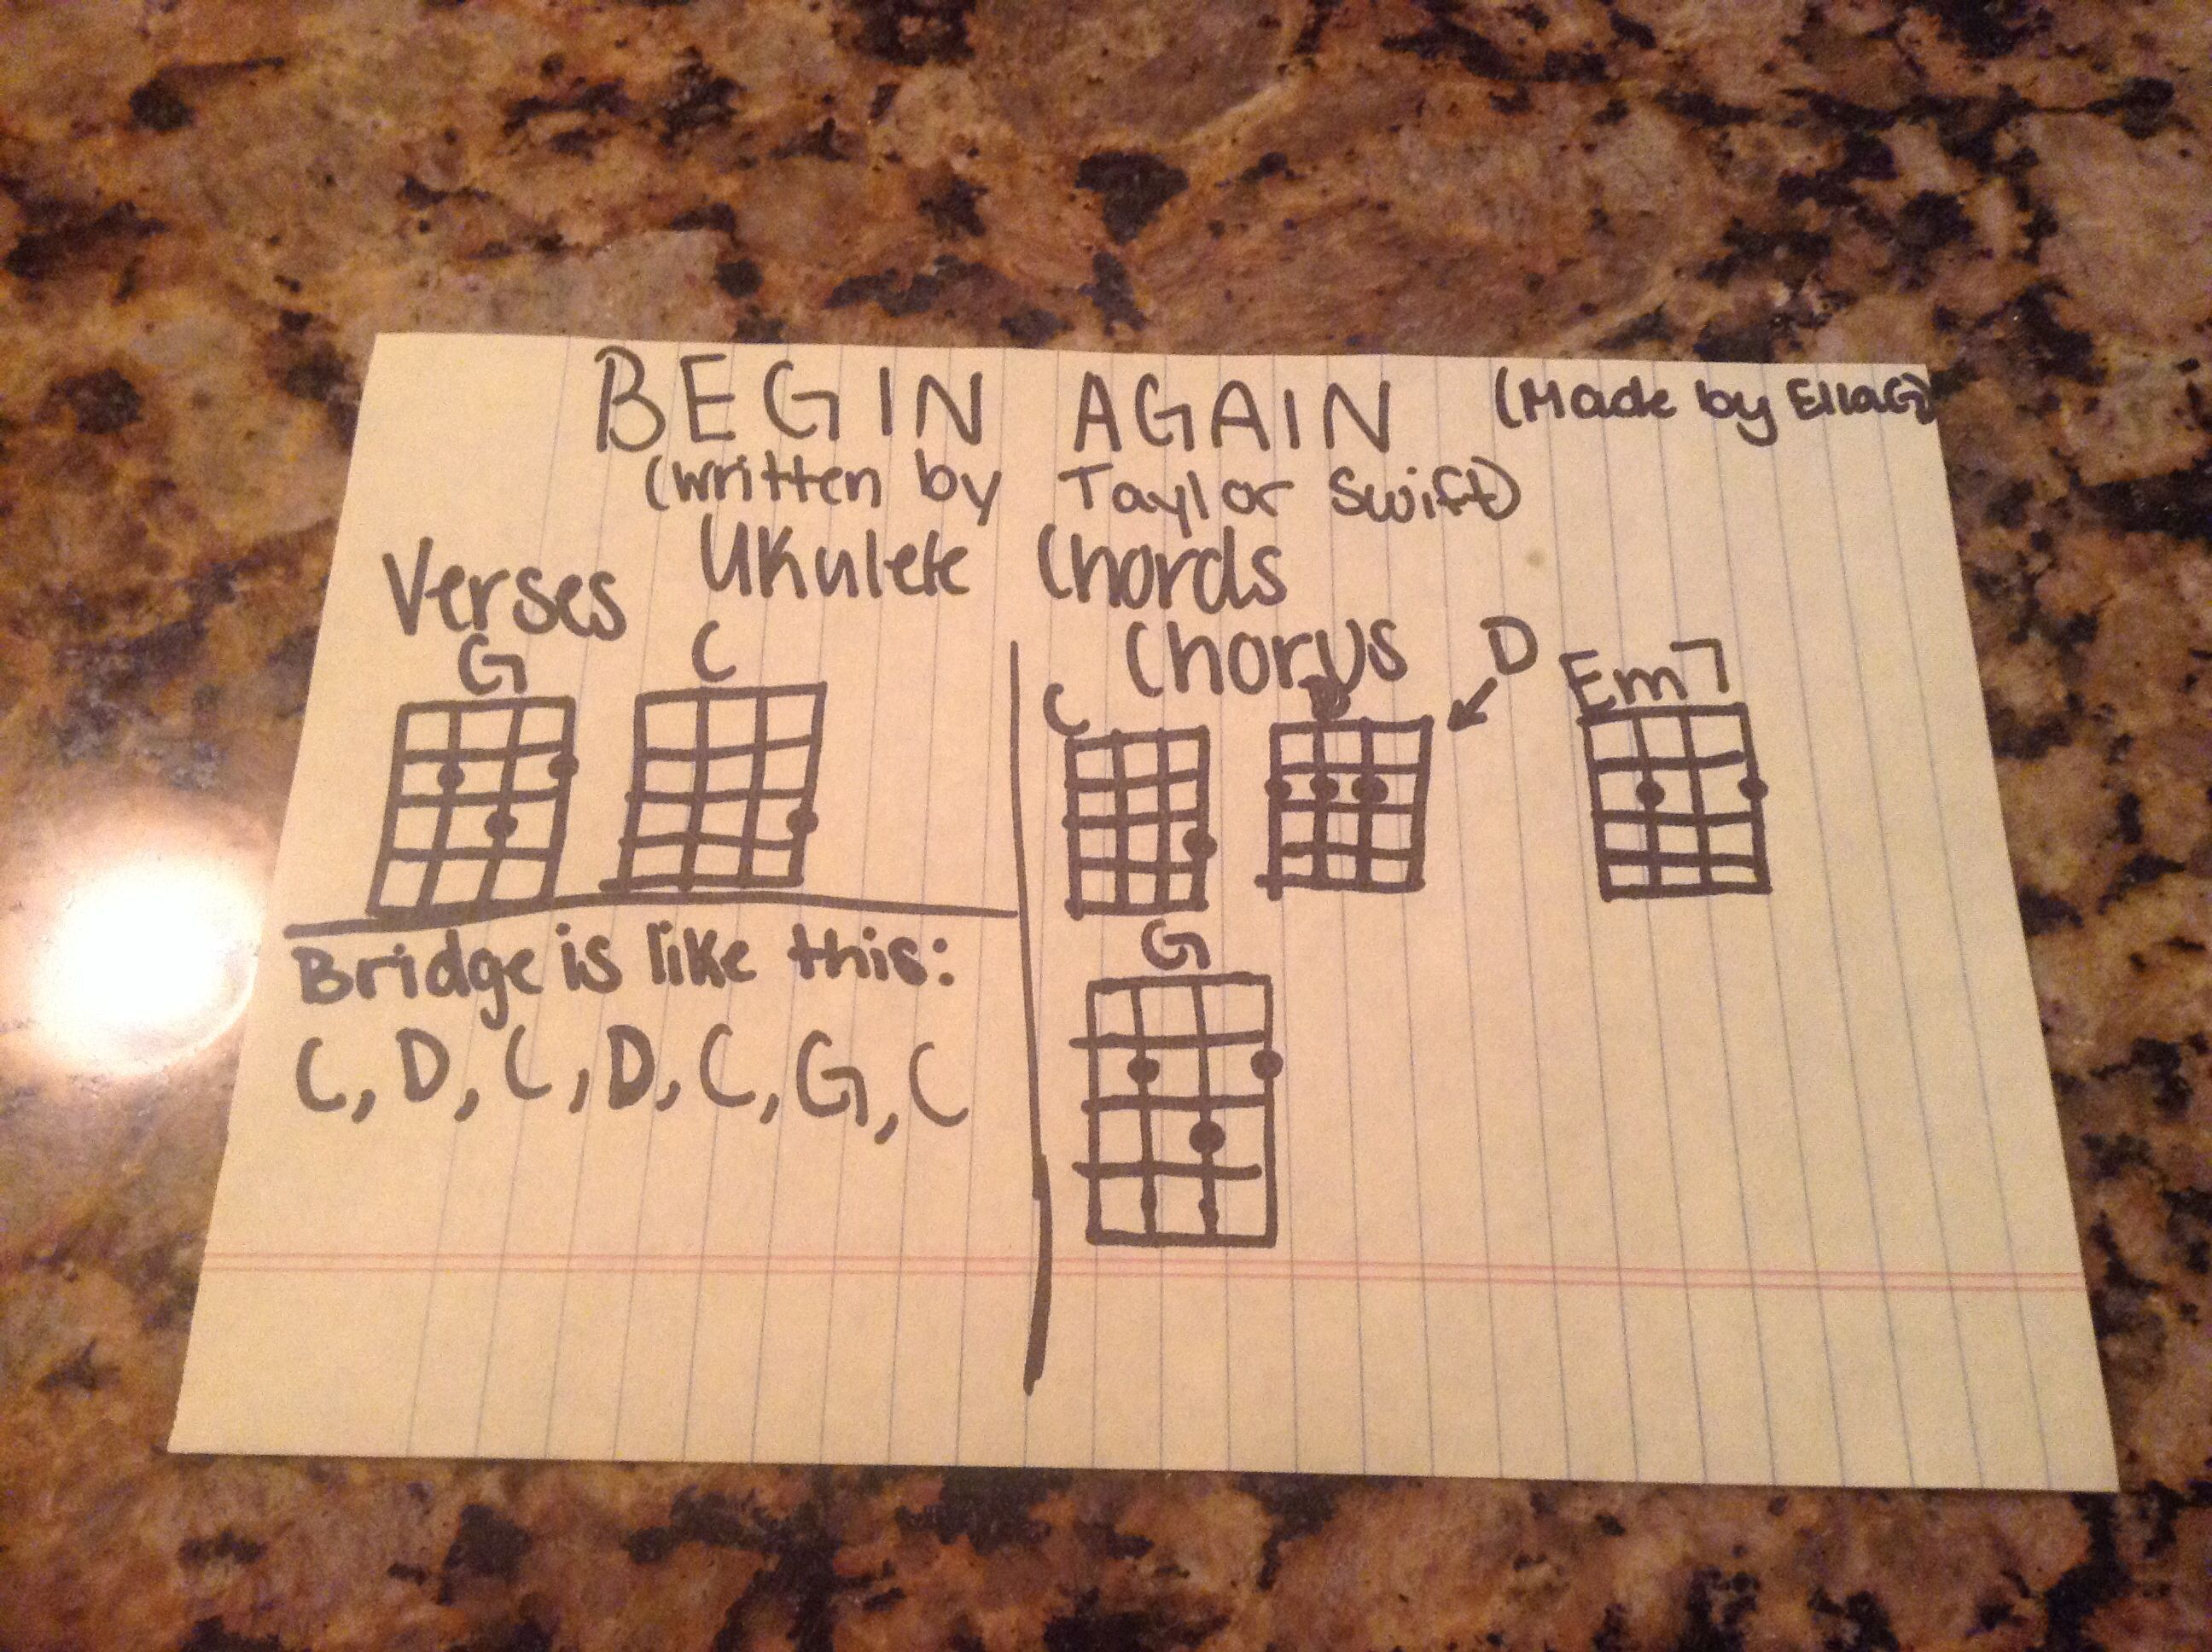 Here Is The Ukulele Chords For Begin Again I Know This Is A Little